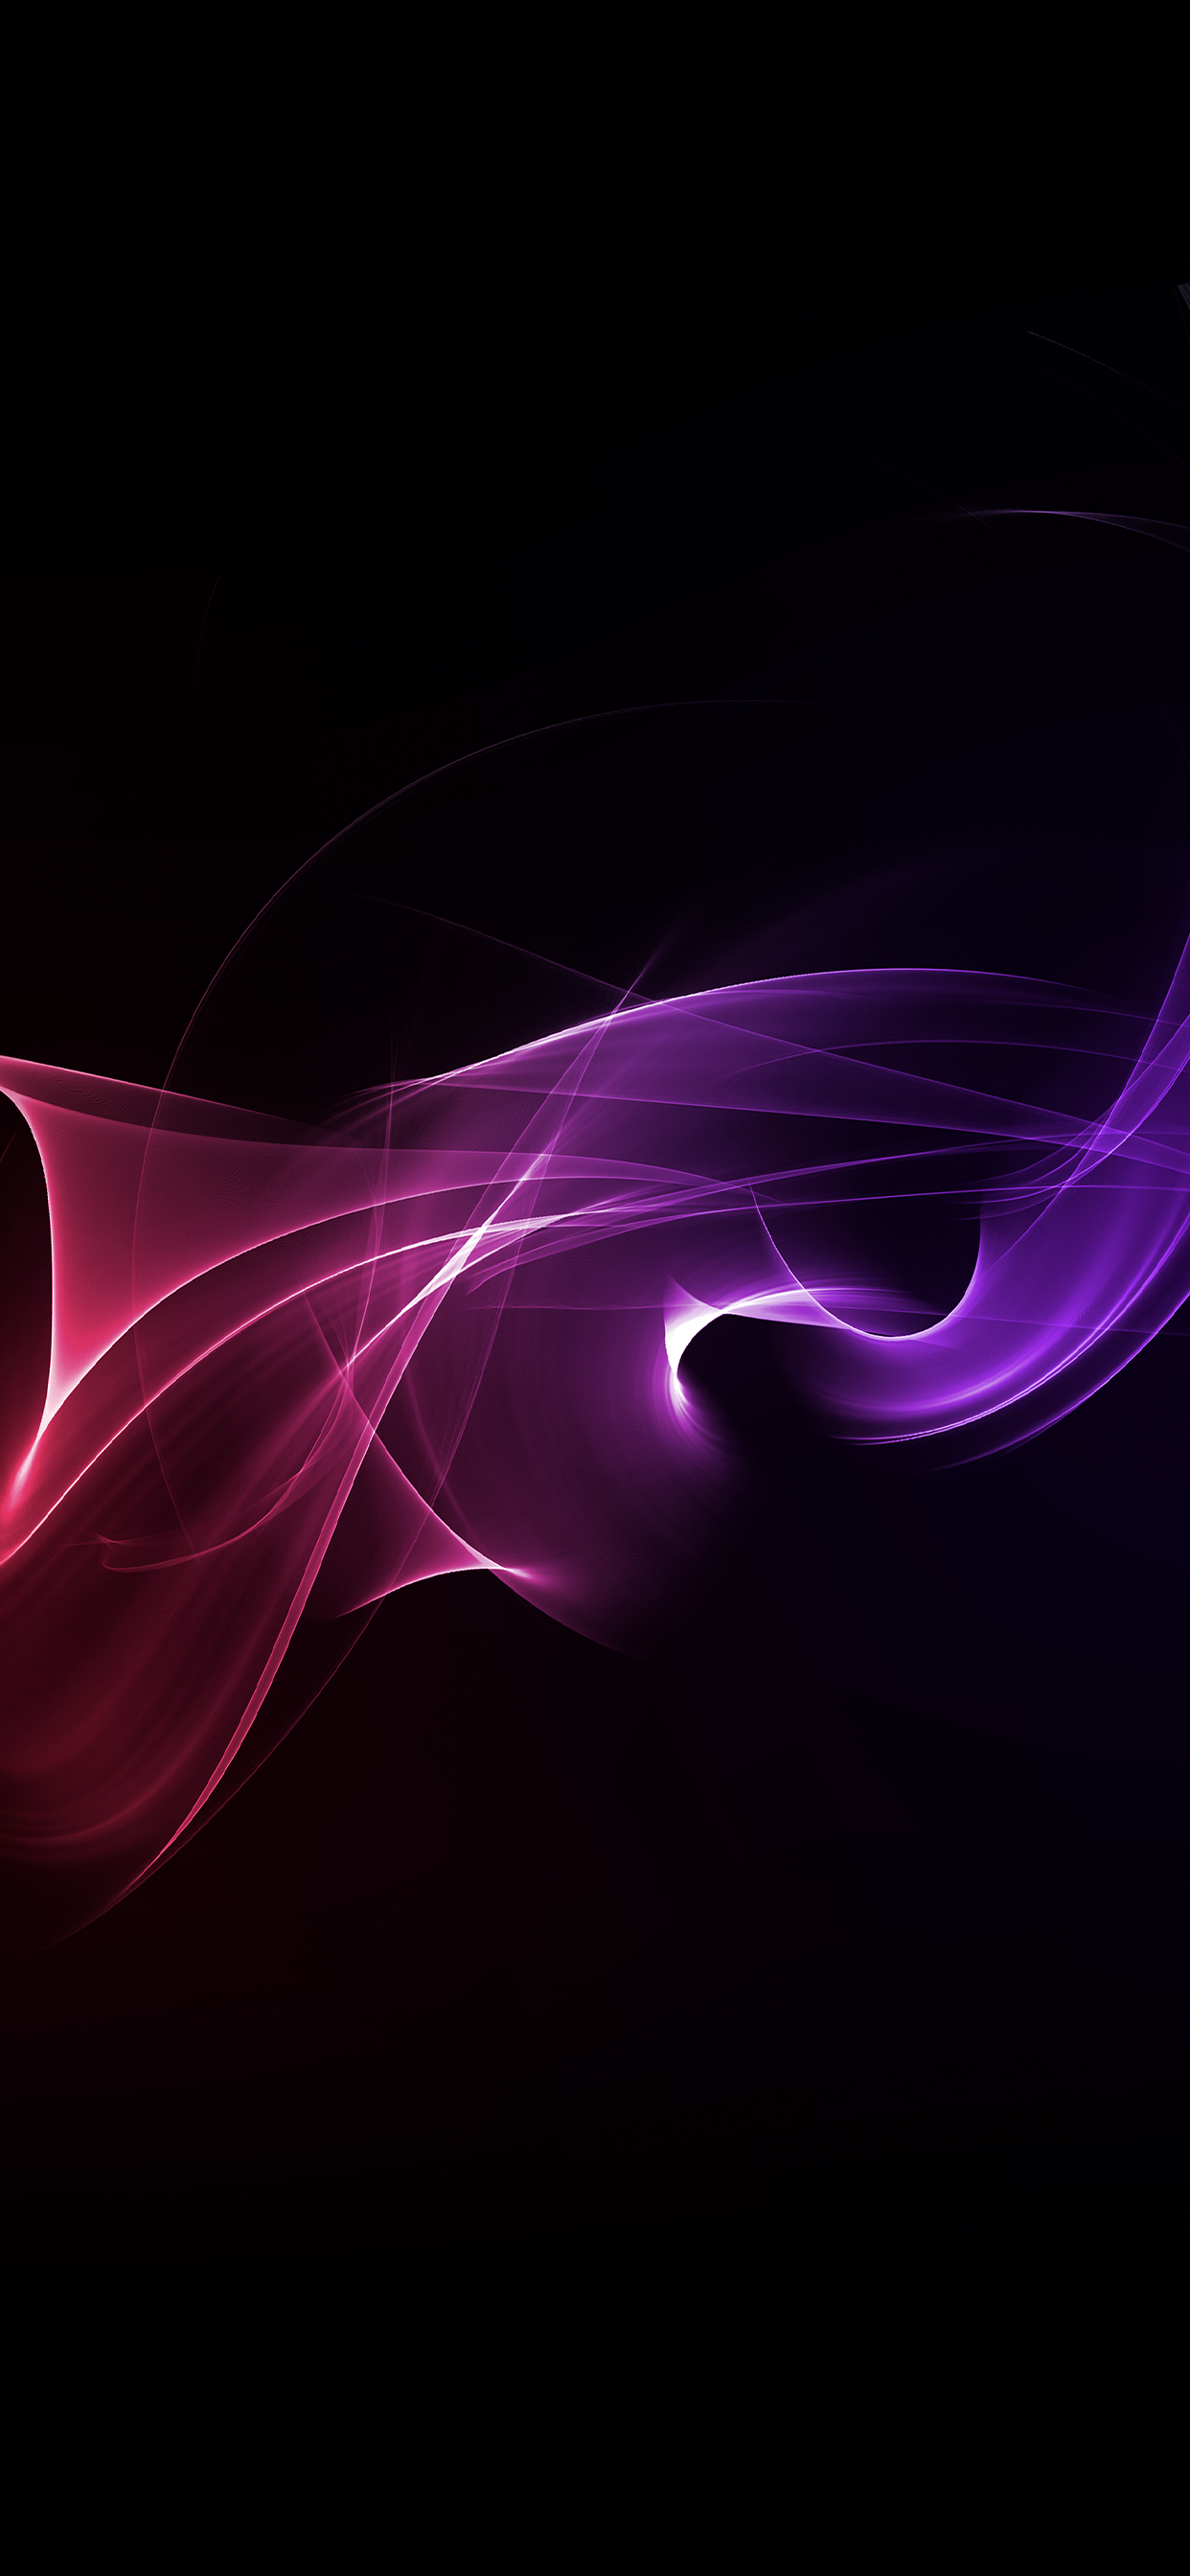 """Wallpapers of the week: abstract """"Fusion"""" for iPhone"""